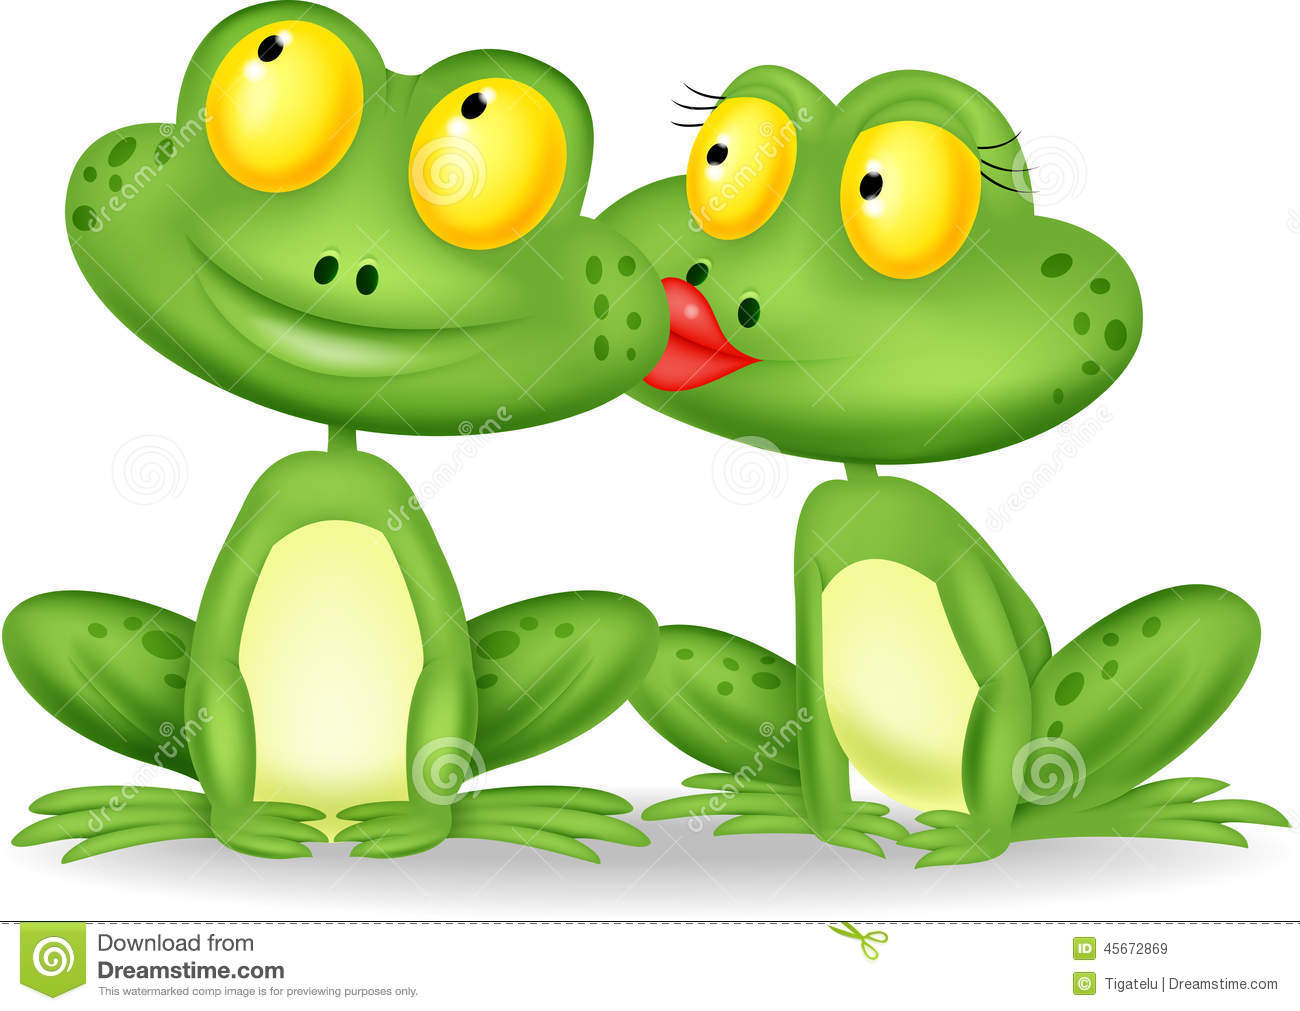 Married Frog Kissing Stock Vector - Image: 45672869